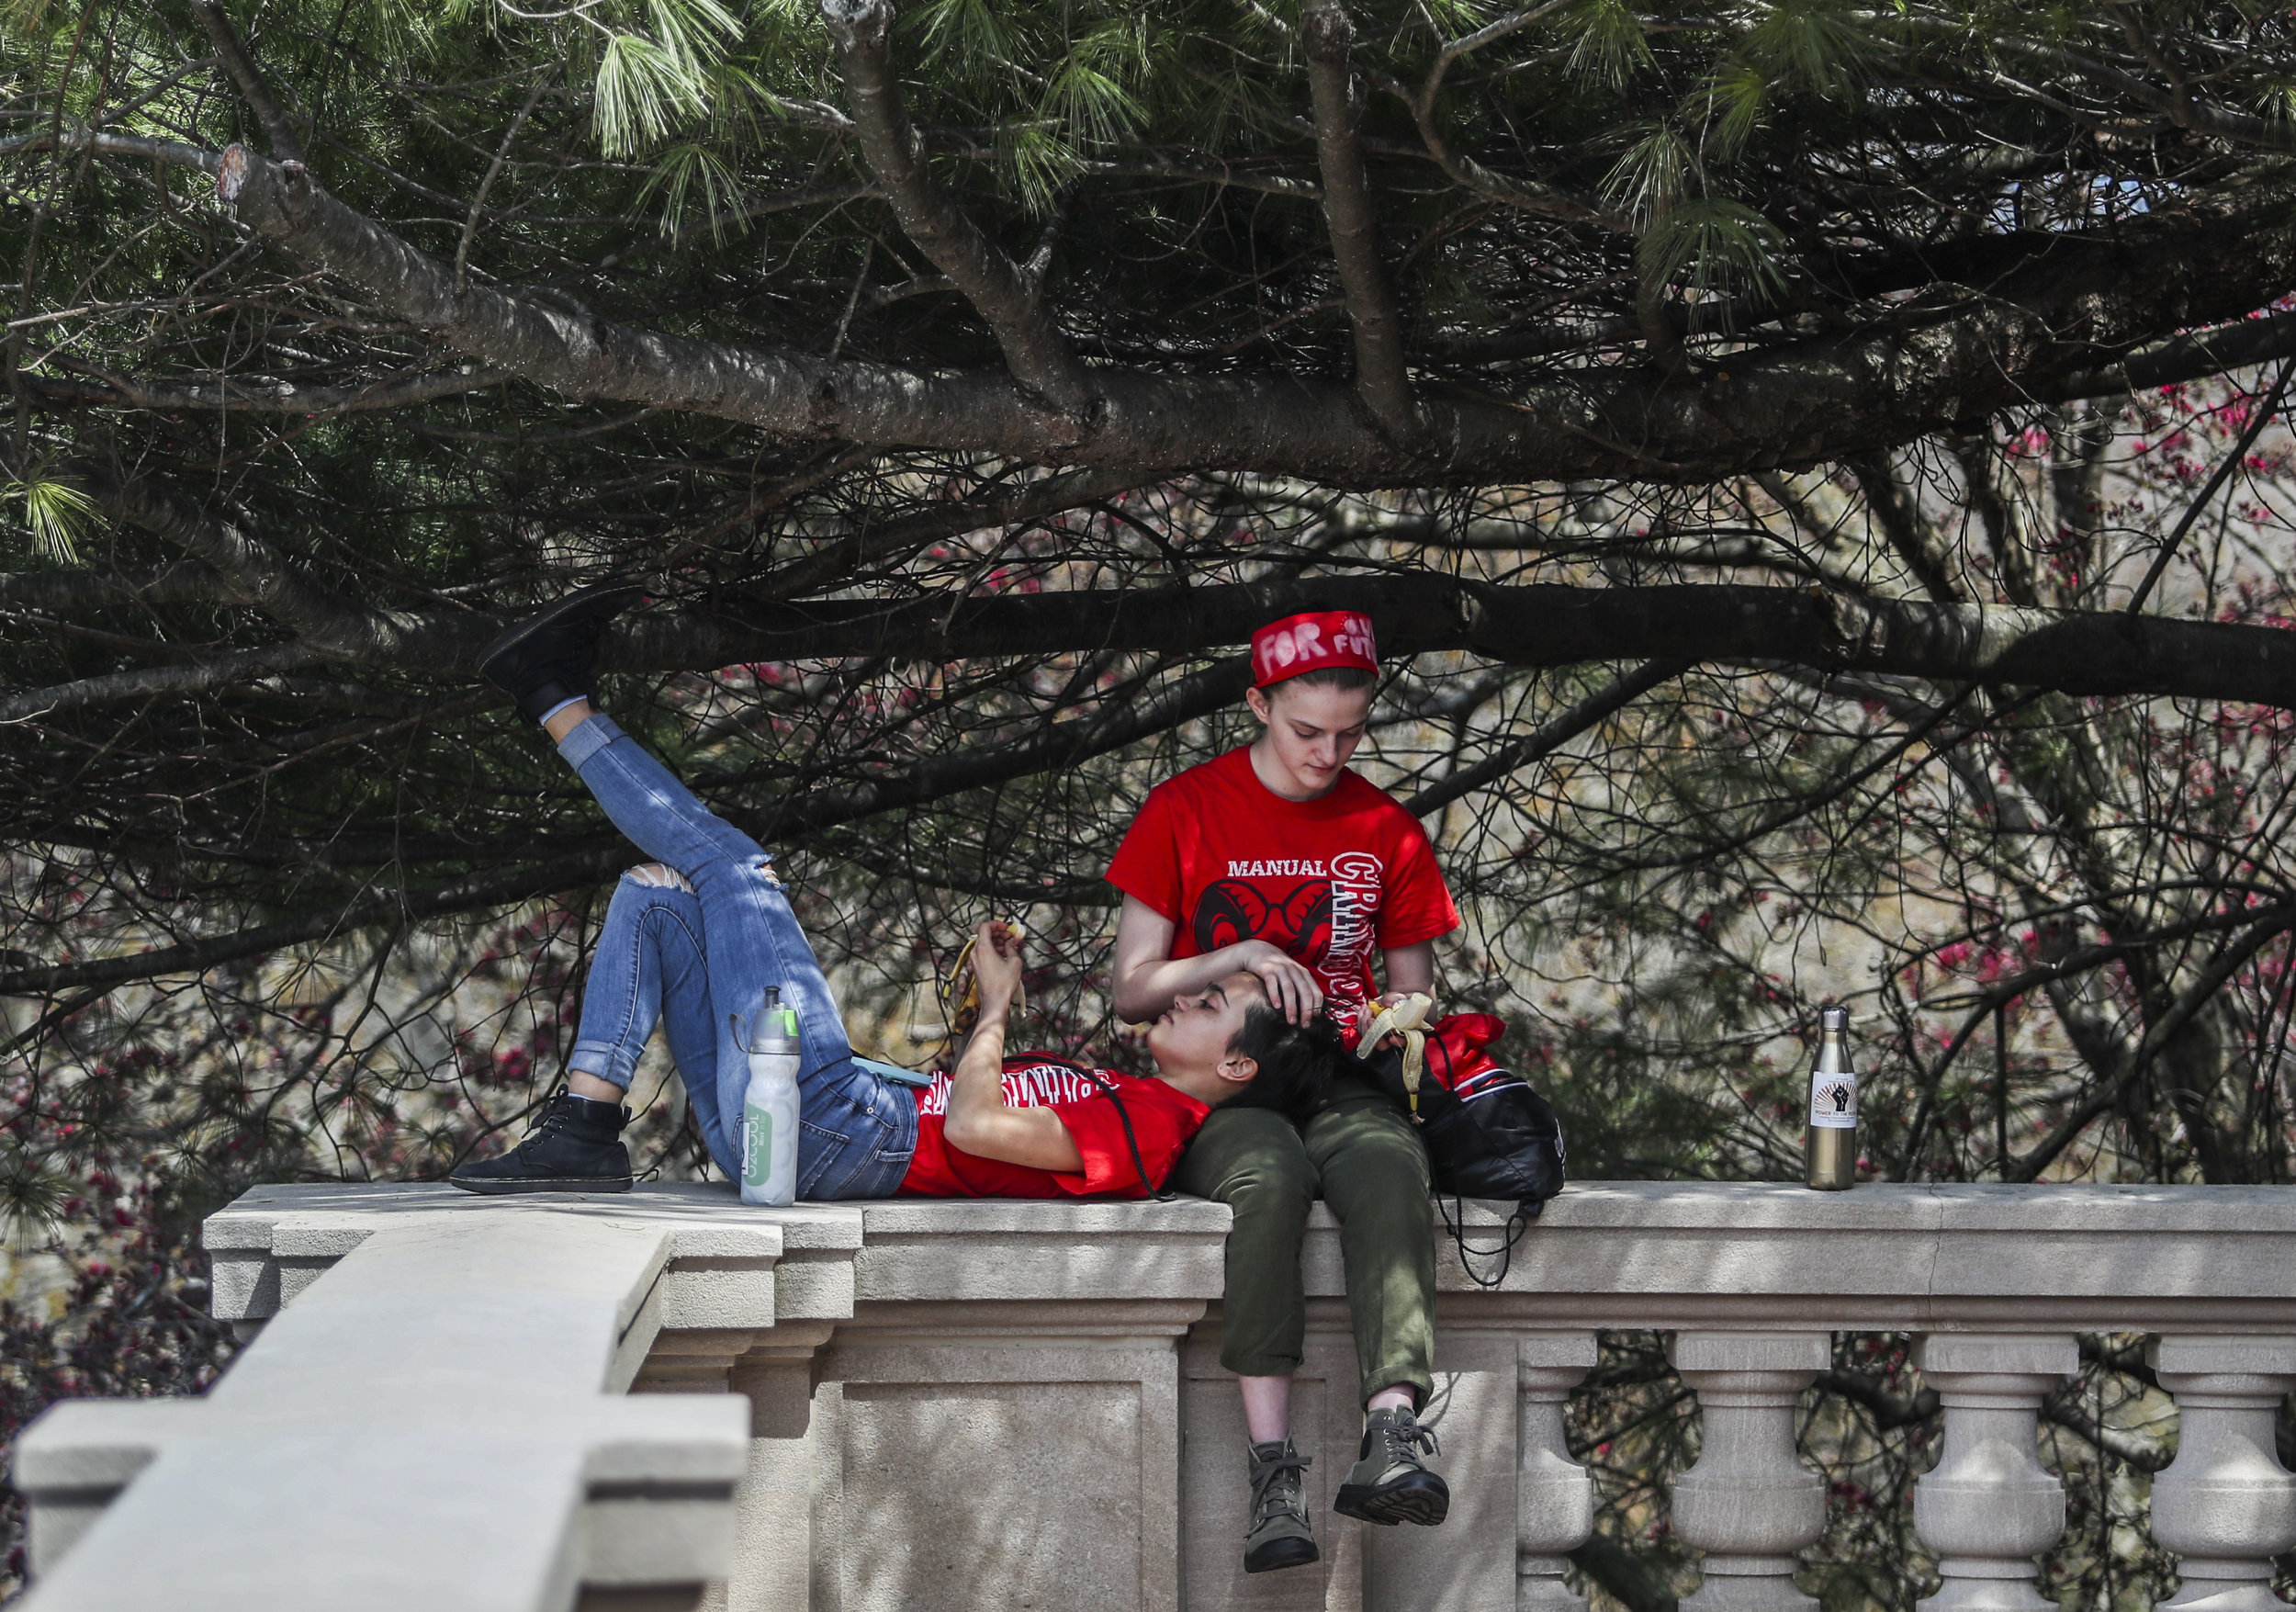 Oli Tierney, left, and Sadie Lawrence, both sophomores at duPont Manual High School, take a break from protesting to sit in the shade on Friday, April 13, 2018, at the Kentucky State Capitol.